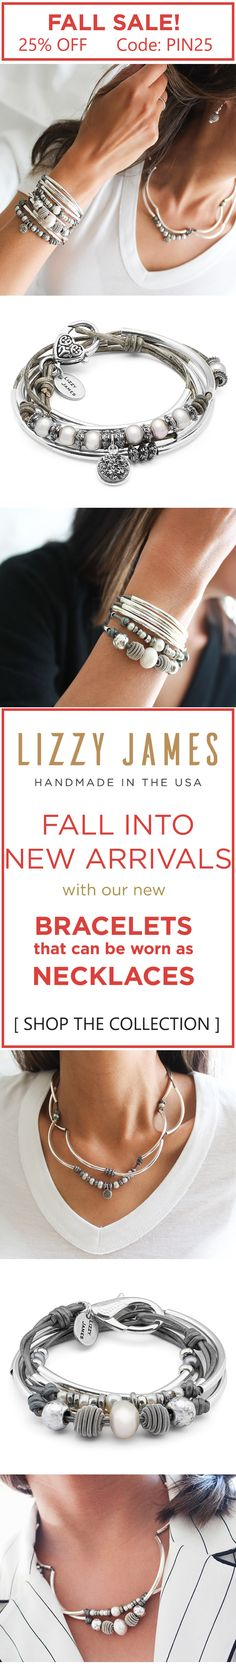 Lizzy James' Fall 2017 unveiling of NEW ARRIVALS! Get 25% OFF with CODE - PIN25 Plus Free Shipping during our Fall Sale. Featuring wrap bracelets that can be worn as necklaces. Available in 30+ leather colors to choose from. Handmade in the USA and currently part of our sitewide Lizzy James sale. #MadeInUSA